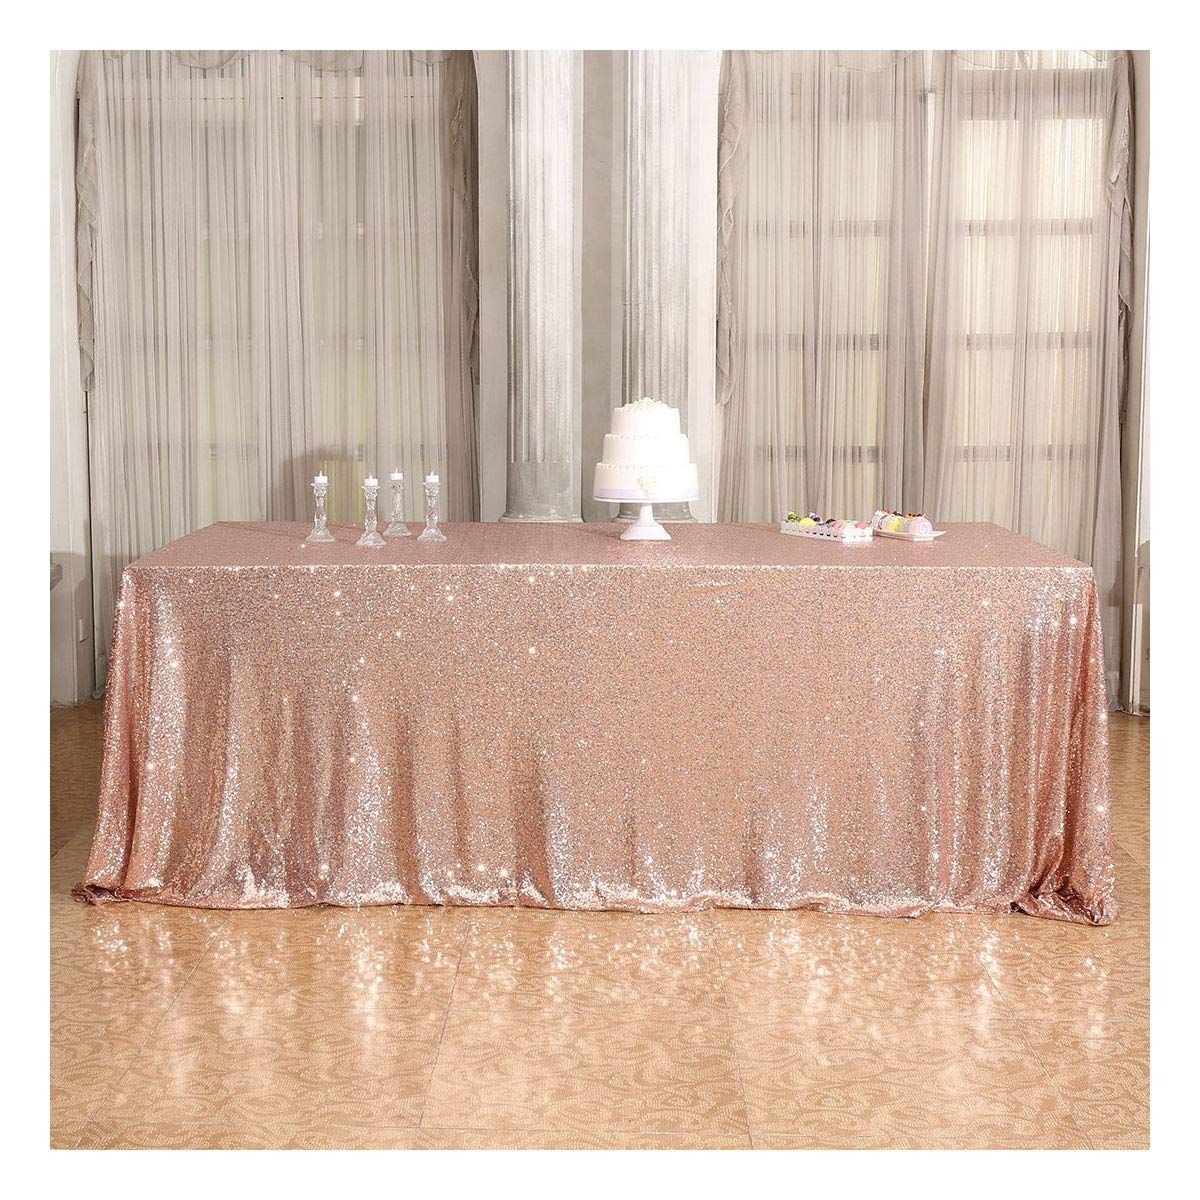 Poise3EHome 90×132'' Rectangle Sequin Tablecloth for Party Cake Dessert Table Exhibition Events, Rose Gold